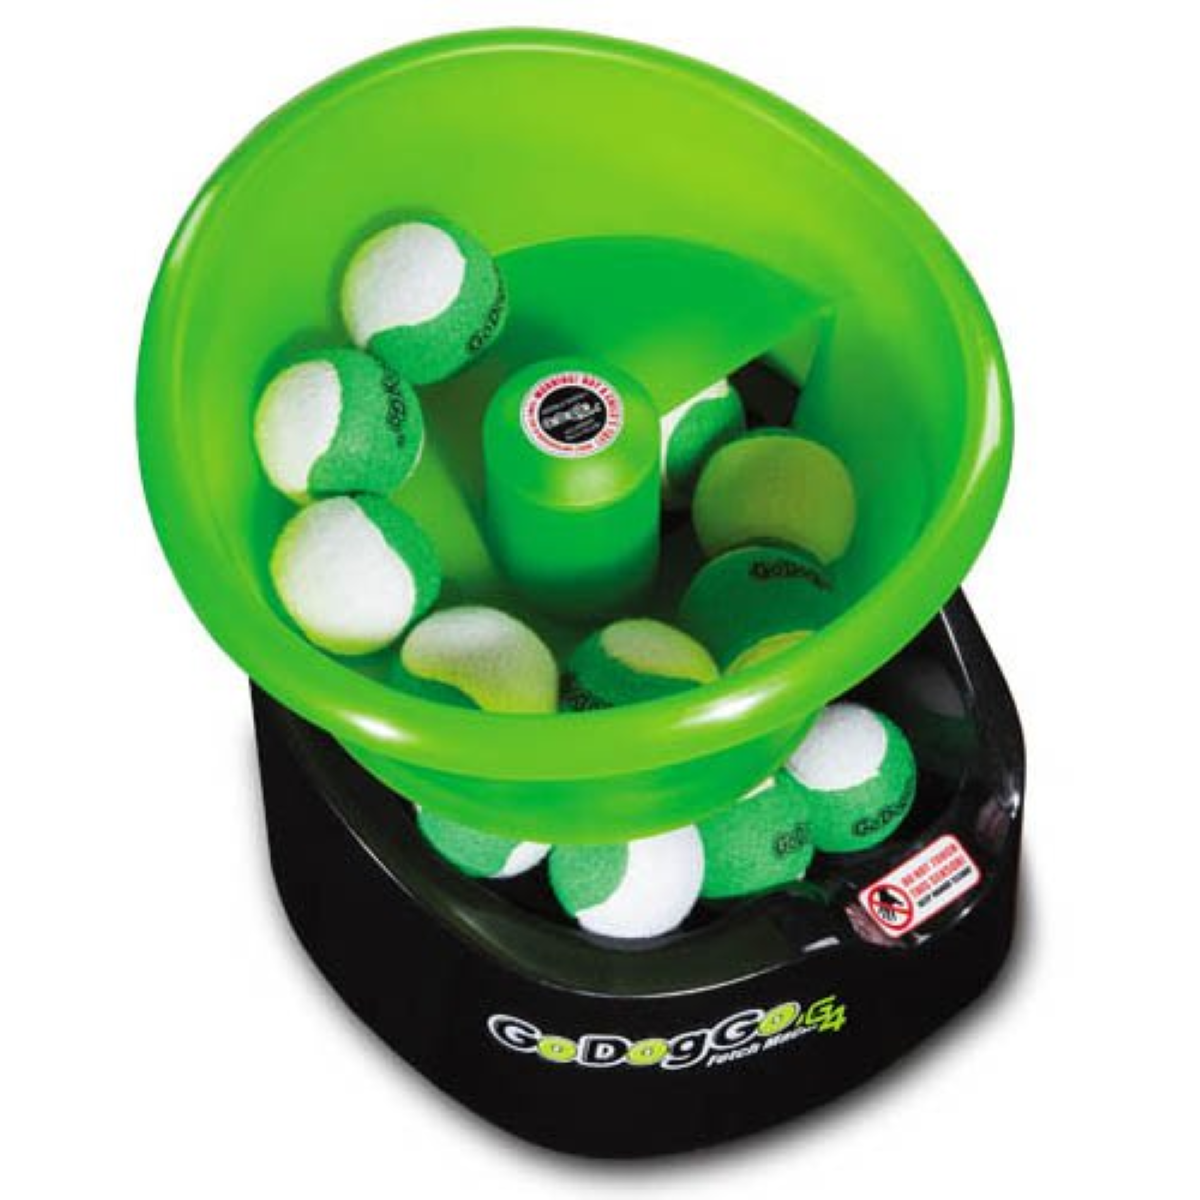 GoDogGo Fetch G4 Automatic Dog Ball Thrower - Multiple Ball Support (1 to 25 balls - depends on size)